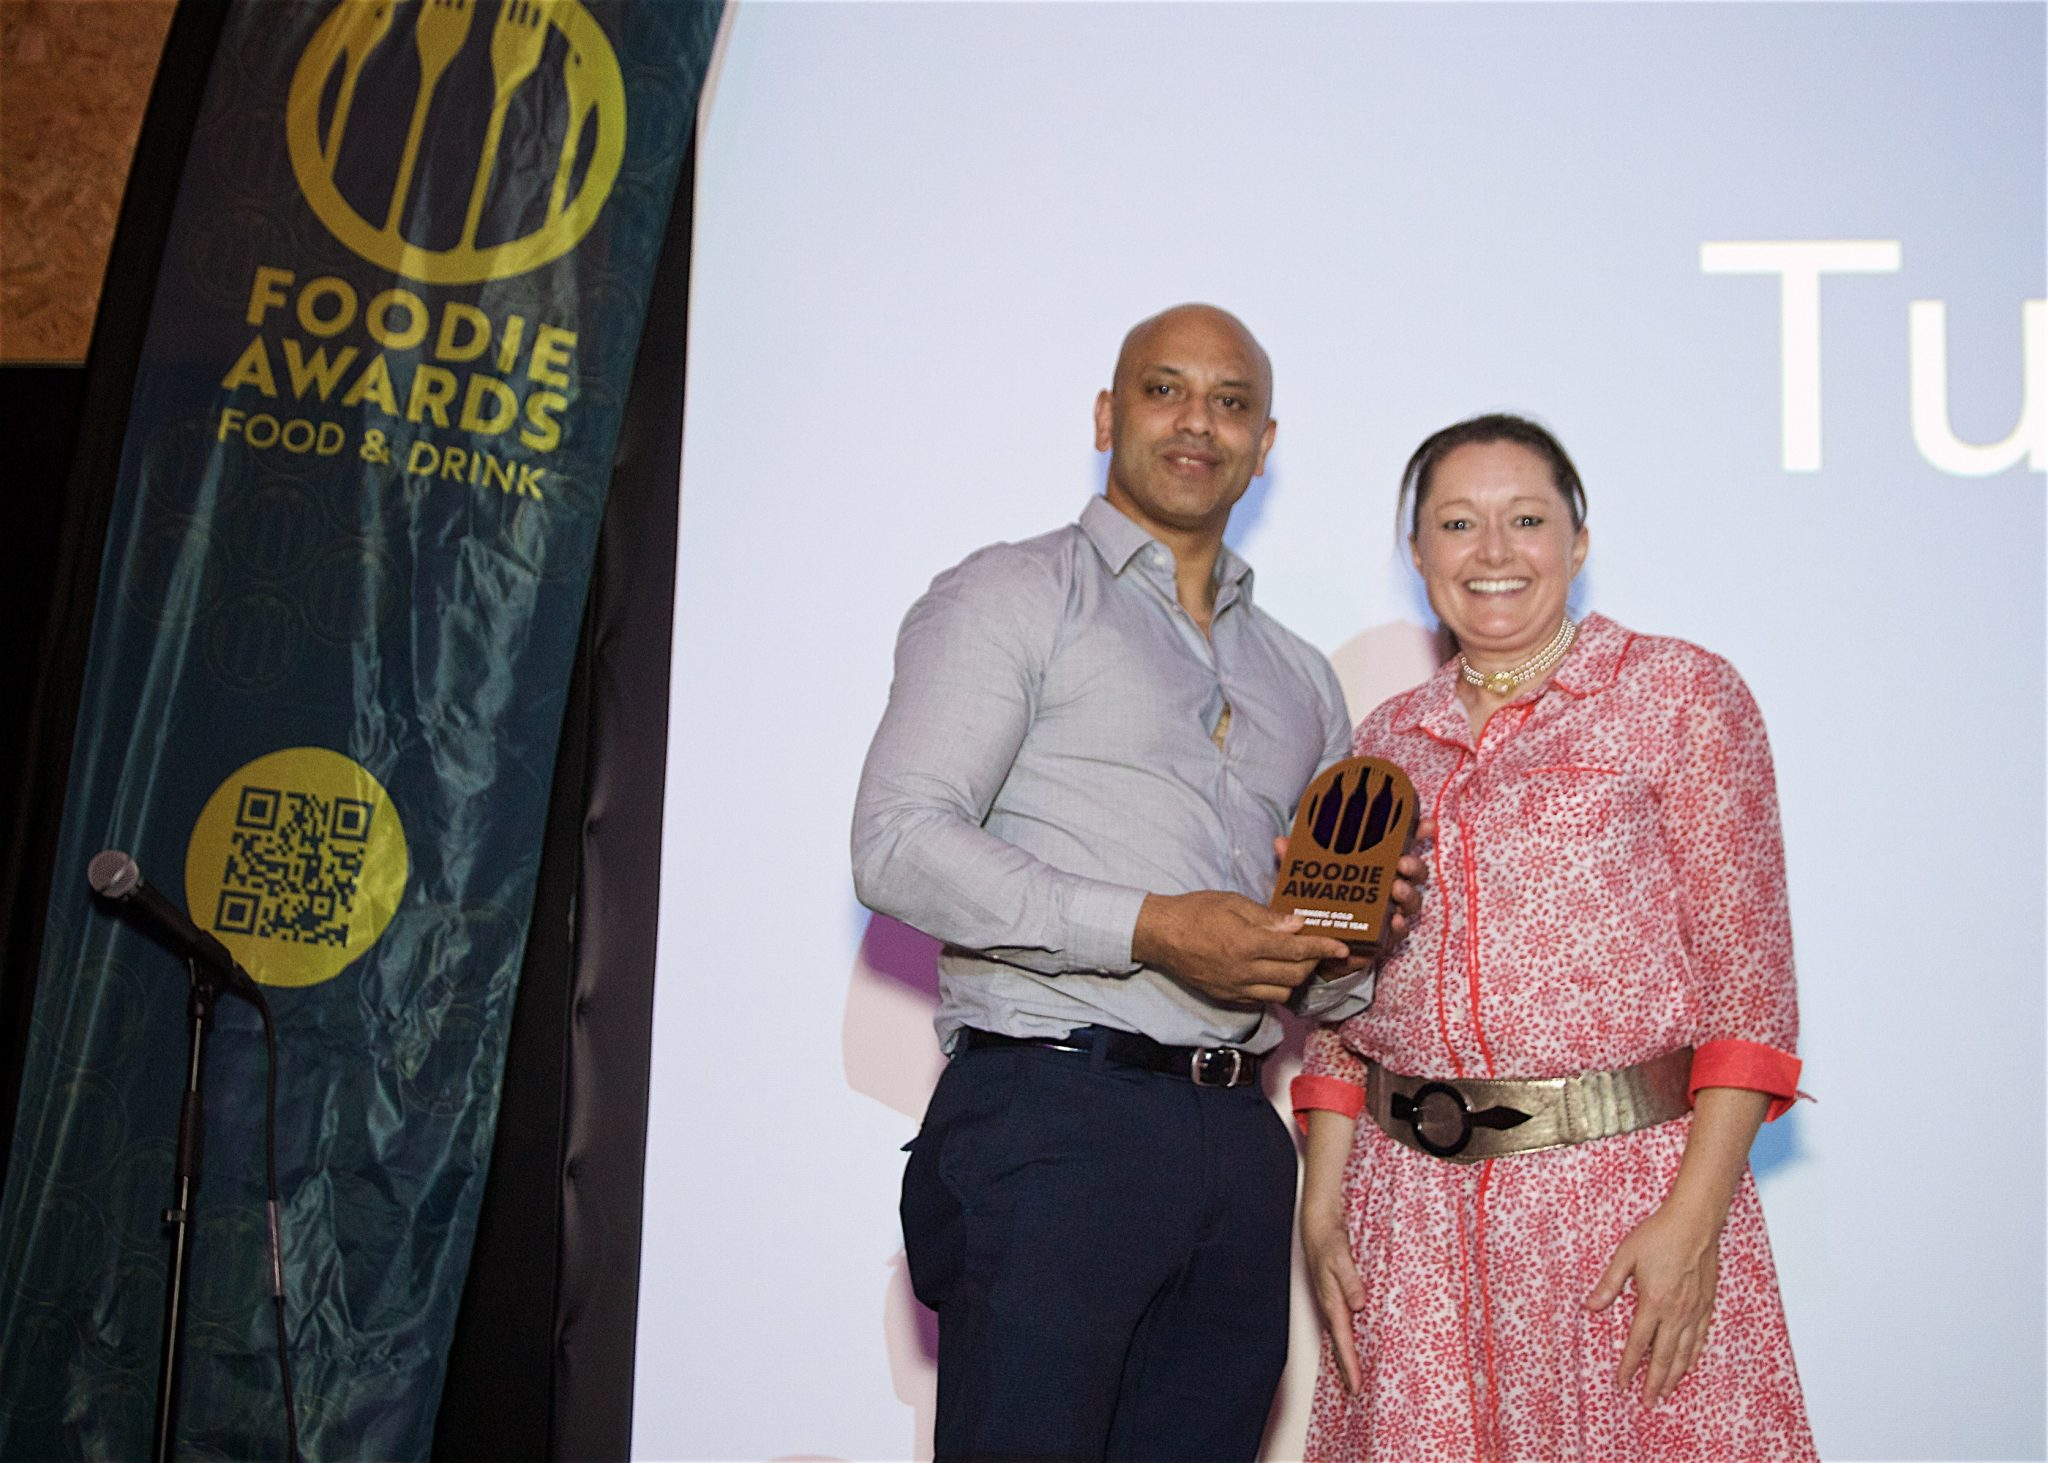 Jay Alam of Turmeric Gold presented with the Restaurant of the Year Award by Steph Kerr